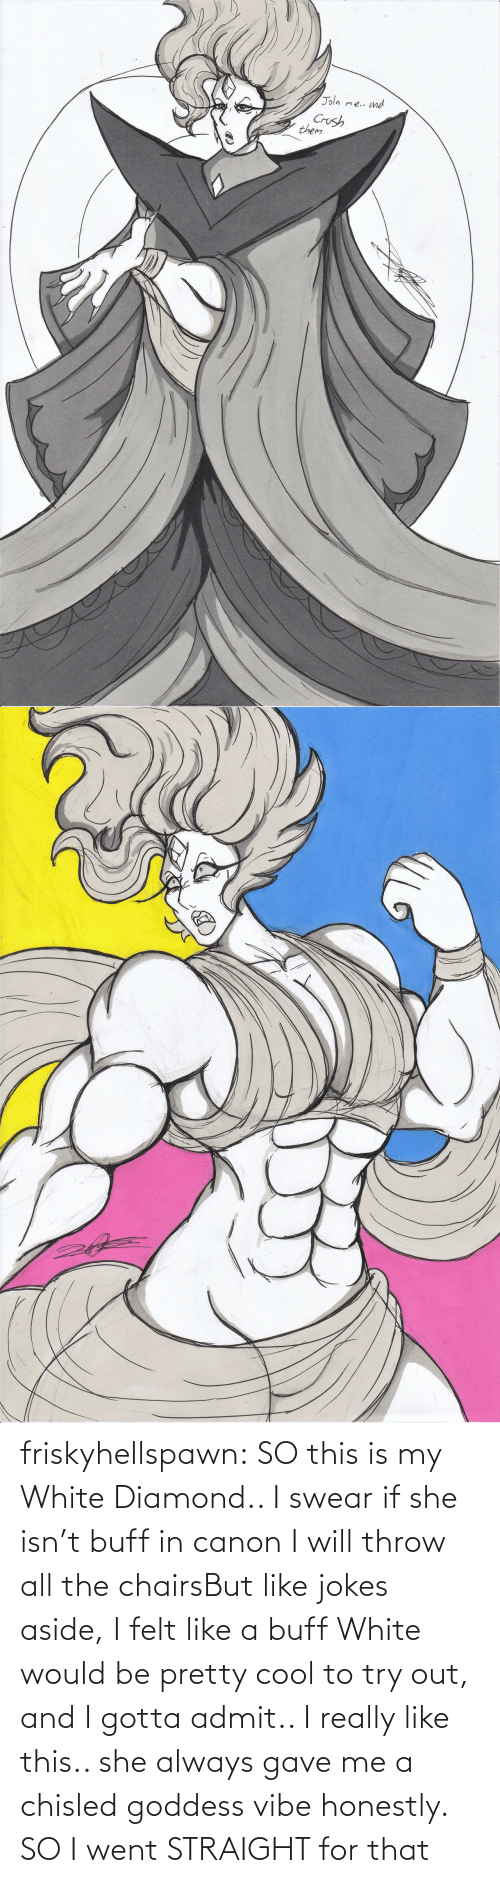 throw: friskyhellspawn:  SO this is my White Diamond.. I swear if she isn't buff in canon I will throw all the chairsBut like jokes aside, I felt like a buff White would be pretty cool to try out, and I gotta admit.. I really like this.. she always gave me a chisled goddess vibe honestly. SO I went STRAIGHT for that